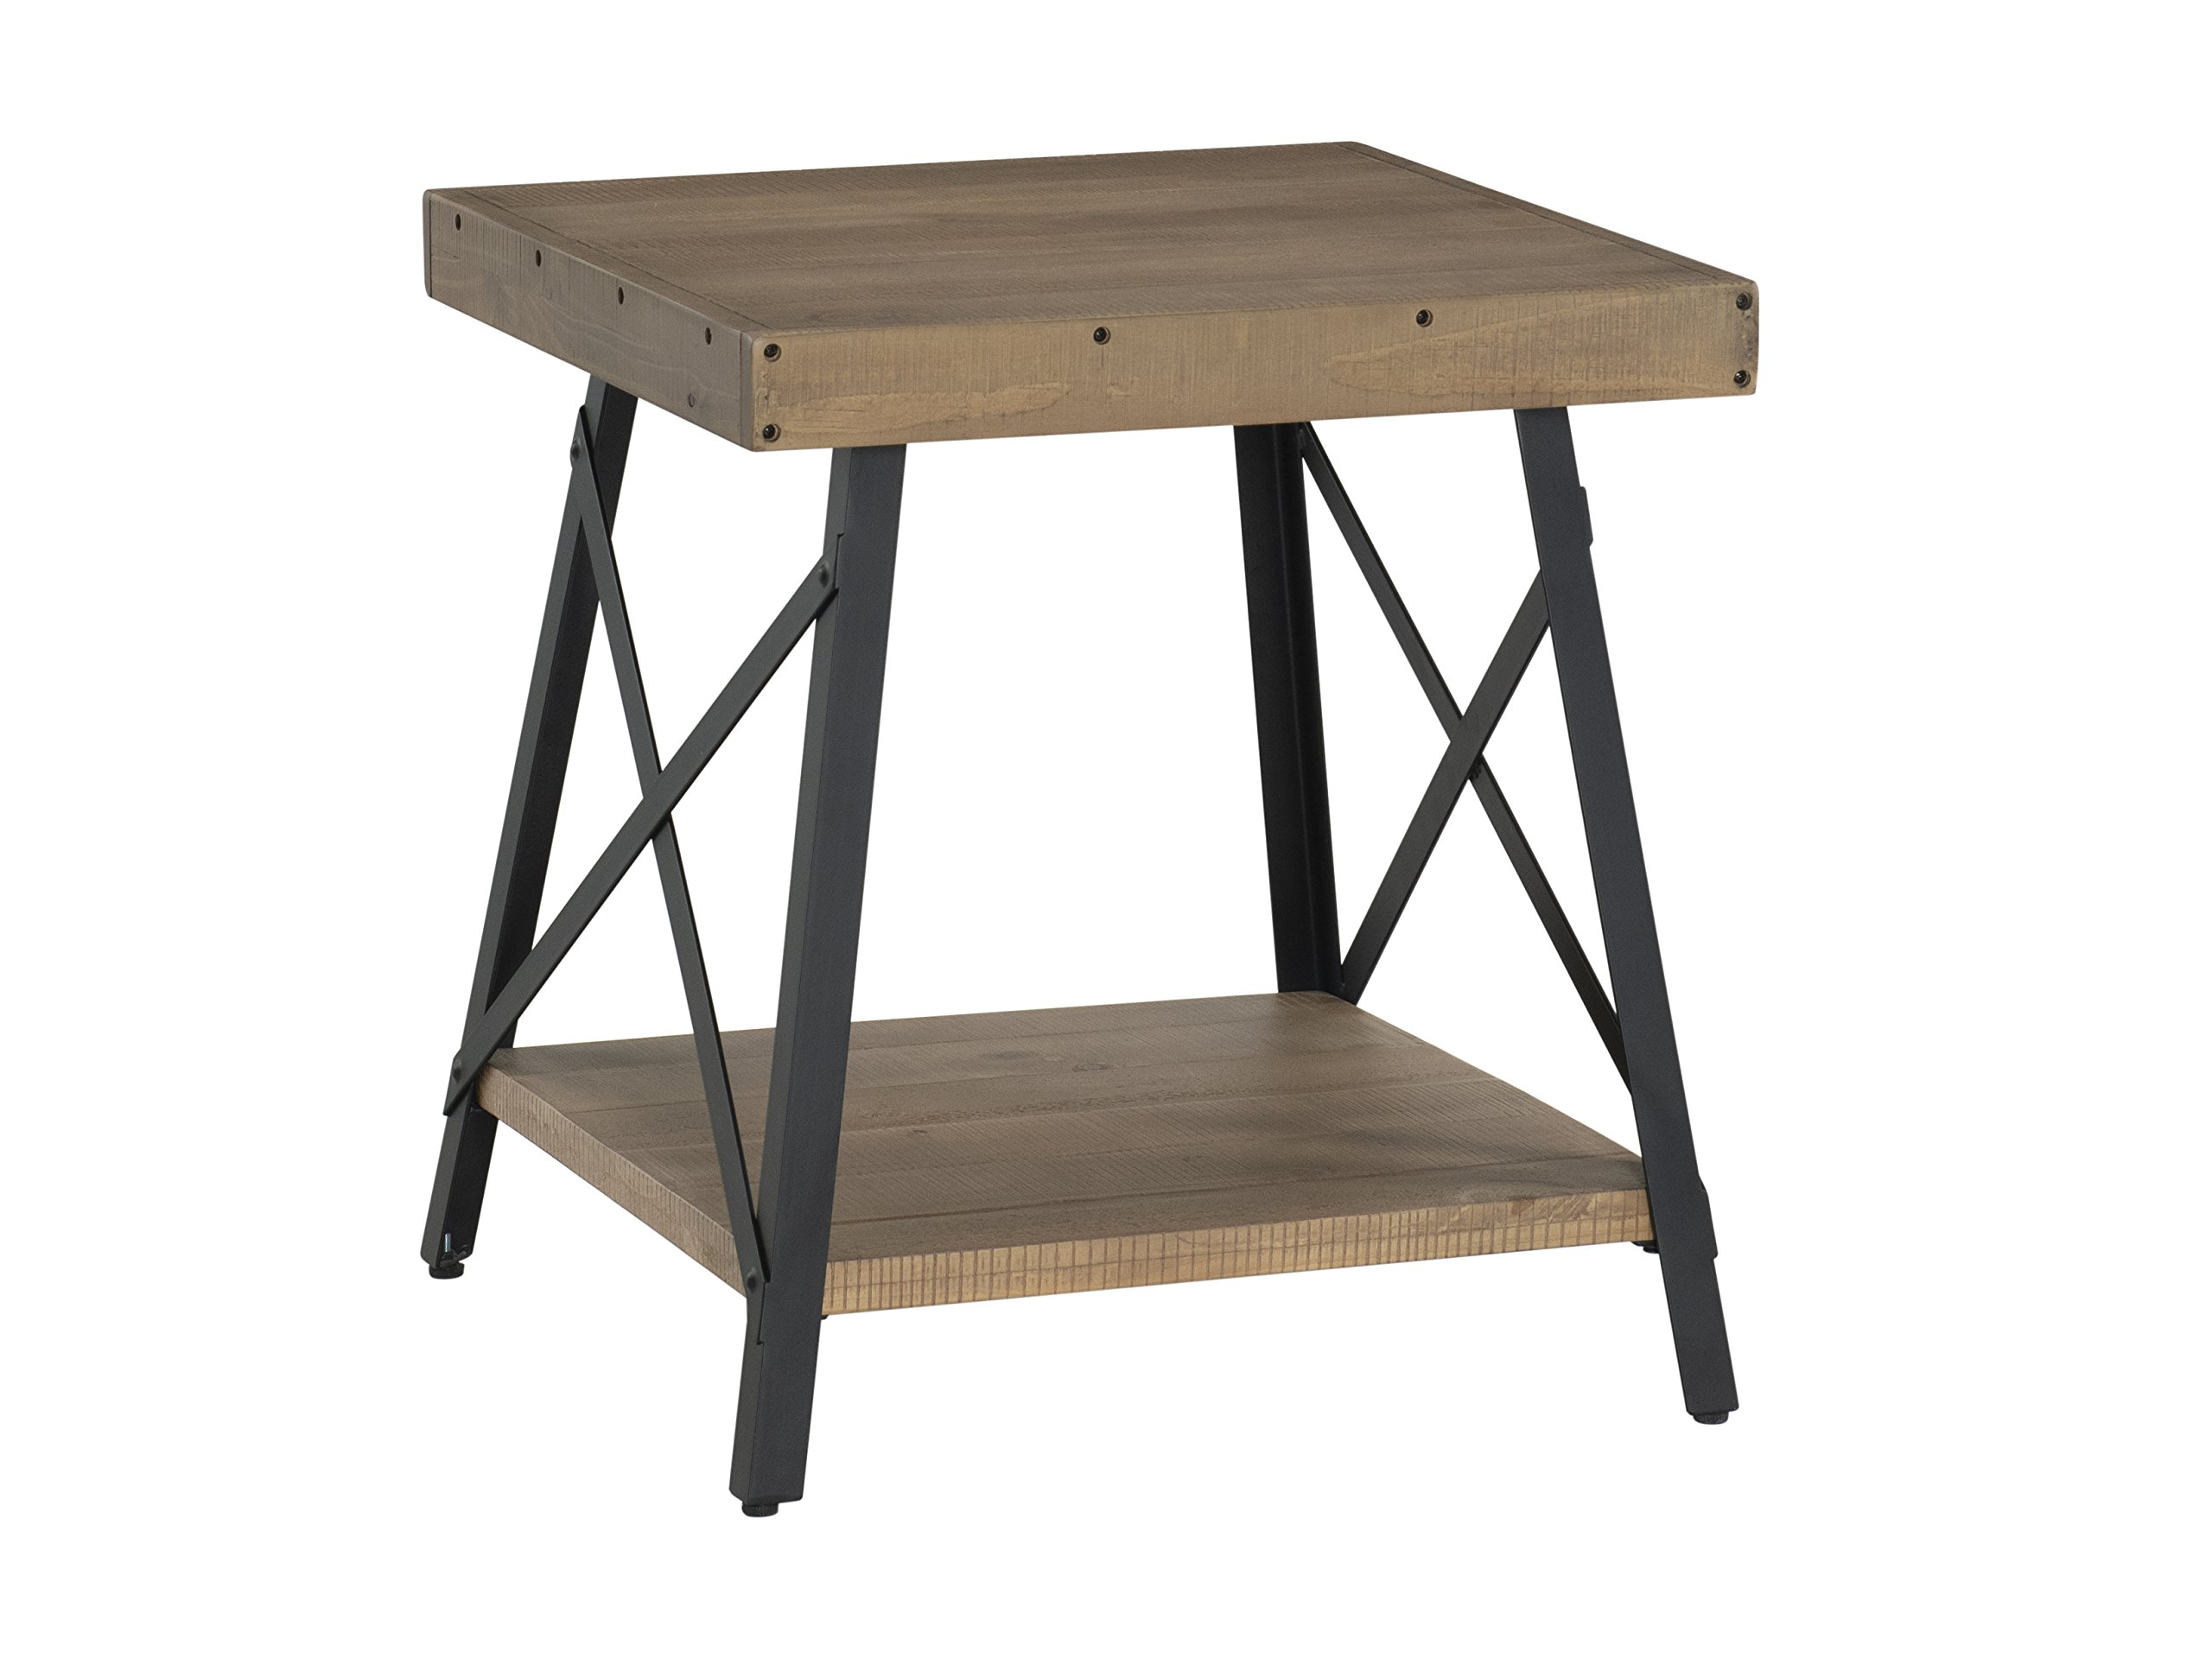 "Martin Svensson Home 890434 Xavier End Table, Reclaimed Natural - Finish: Reclaimed Natural - reminiscent of Reclaimed wood found in an old barn or warehouse Crafted from solid wood - New Zealand pine with rough hewn saw marks Exposed rivets across the Top and Black Steel metal ""x"" cross on the end caps give it a distinct industrial and rustic look - living-room-furniture, living-room, end-tables - 81vtPvZVvcL -"